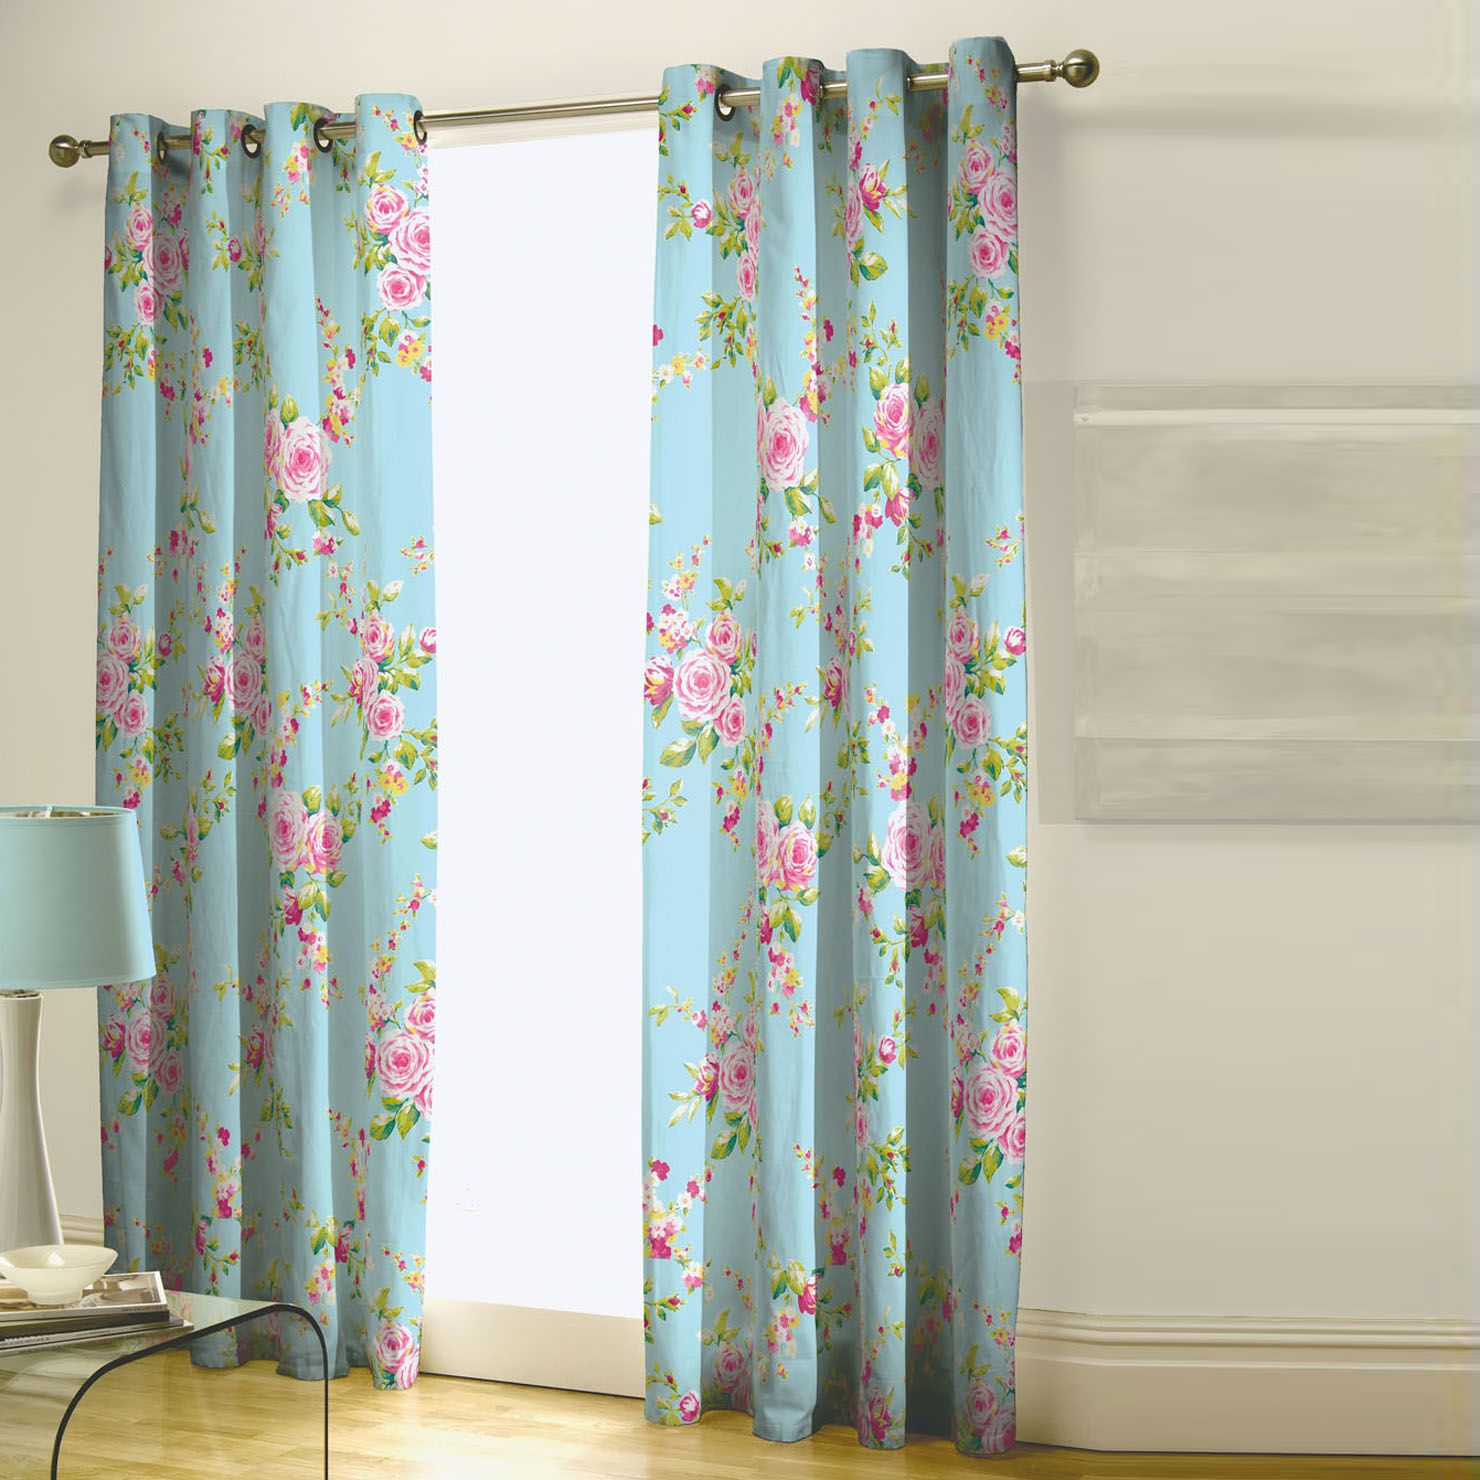 drapes homeains goods depot longhome catalog images blindshome blinds incredible decor home curtains designs brylane ideas designshome of and full size long curtain cataloghome